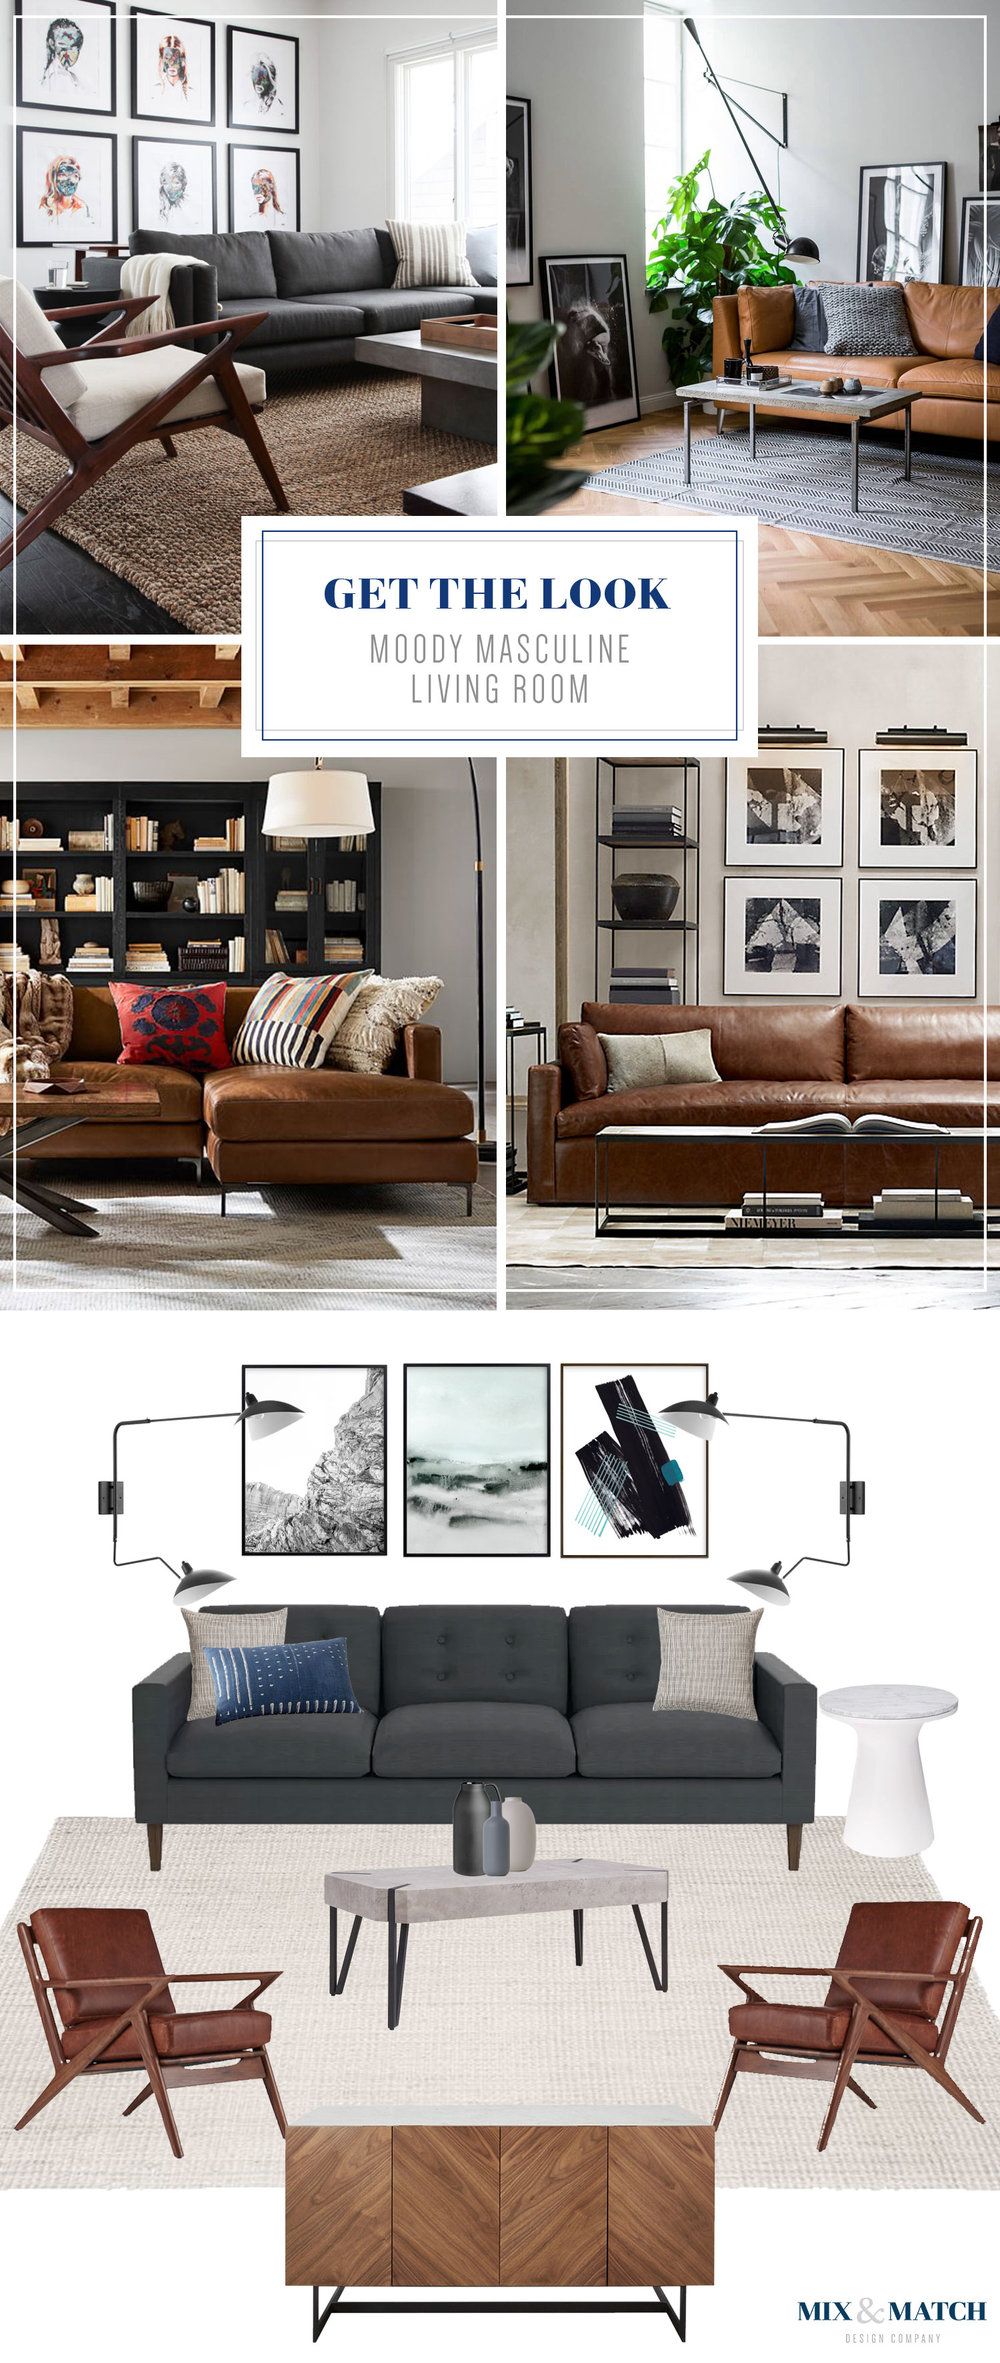 Get the look of this moody, modern, and masculine living room over on the blog! Mid-century modern furniture and rustic details mix together beautifully in this space!